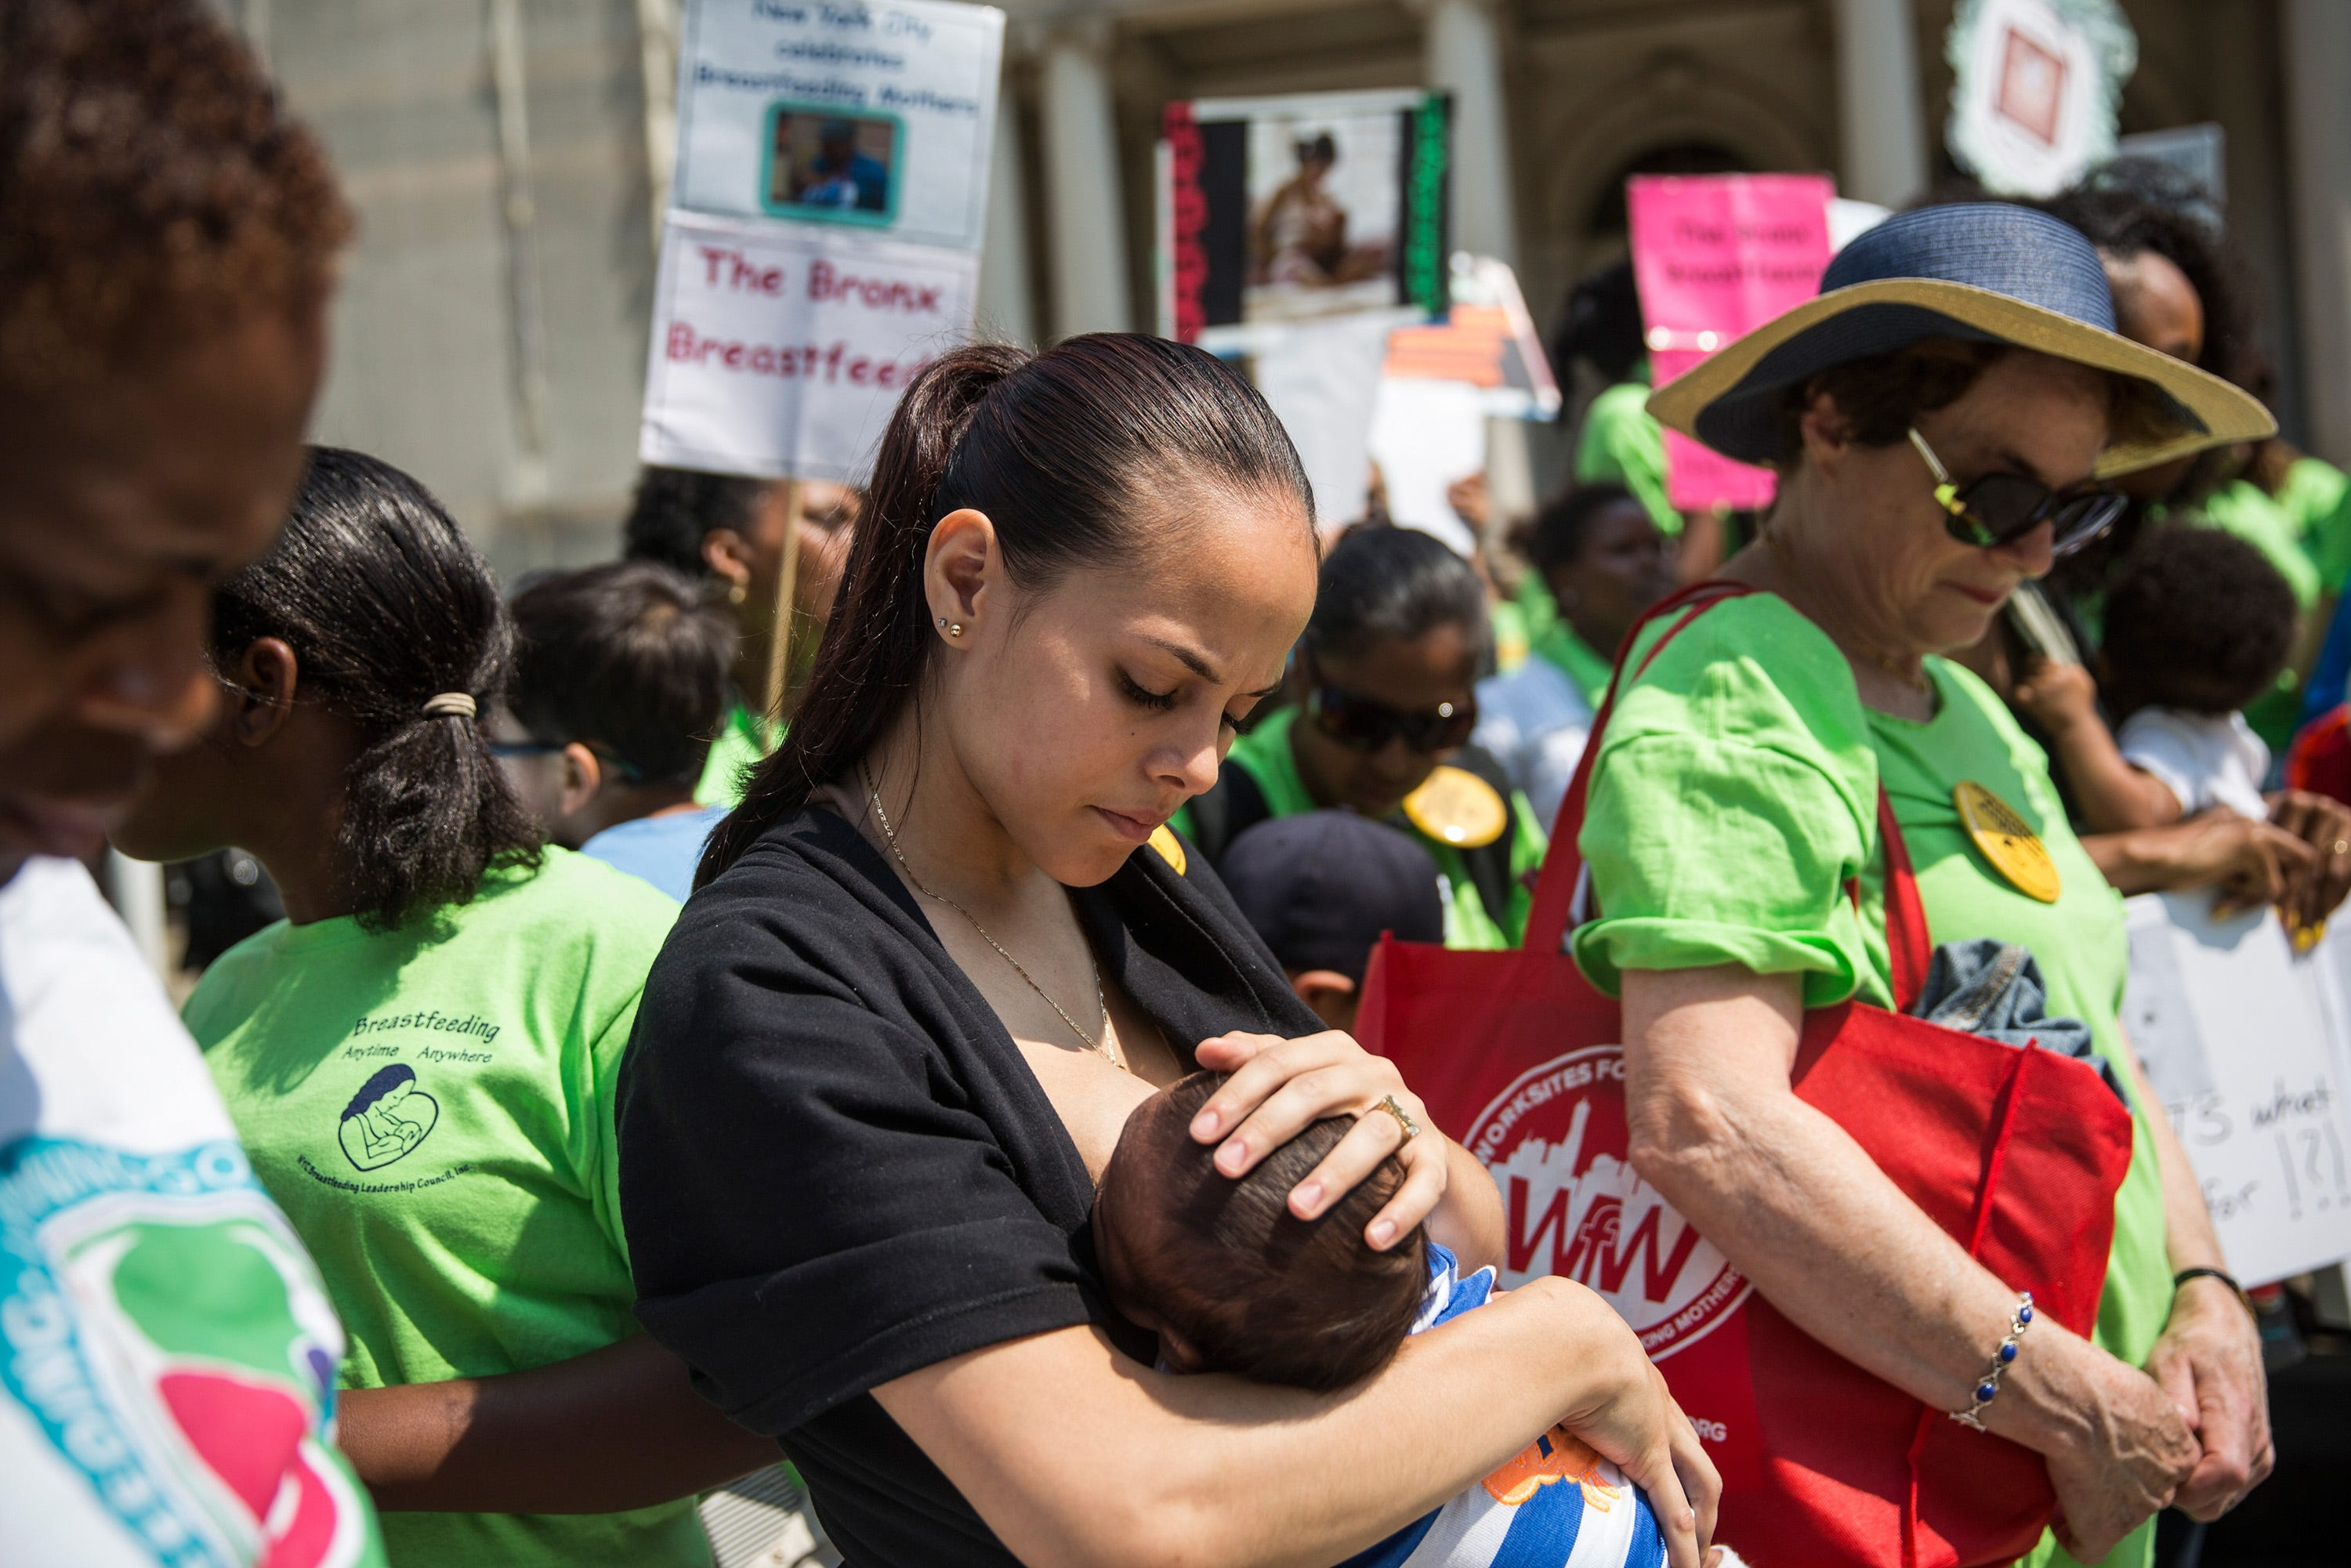 Crystal Mauras breastfeeds her 2-month-old son, Christopher Rhodes Jr., outside New York City Hall during a rally to support breastfeeding in public on August 8, 2014.